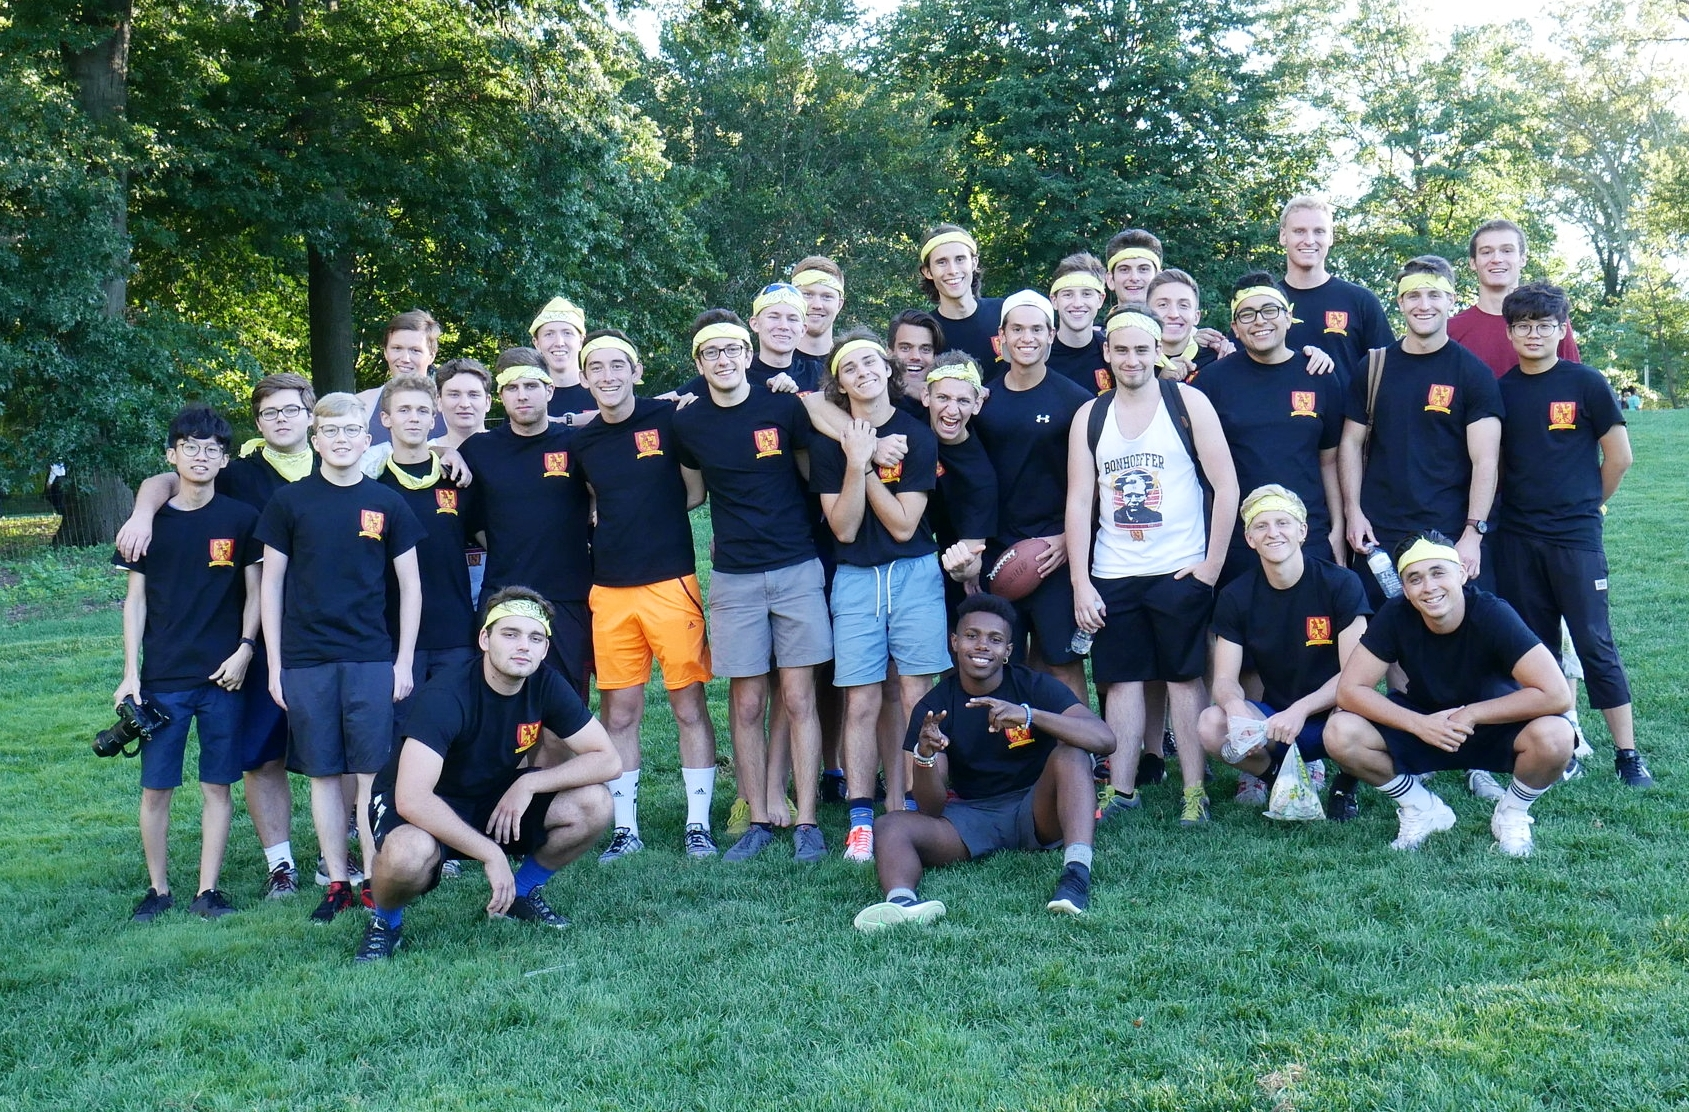 The House of Dietrich Bonhoeffer at the 2016 Great Race Competition. Photo used with permission.